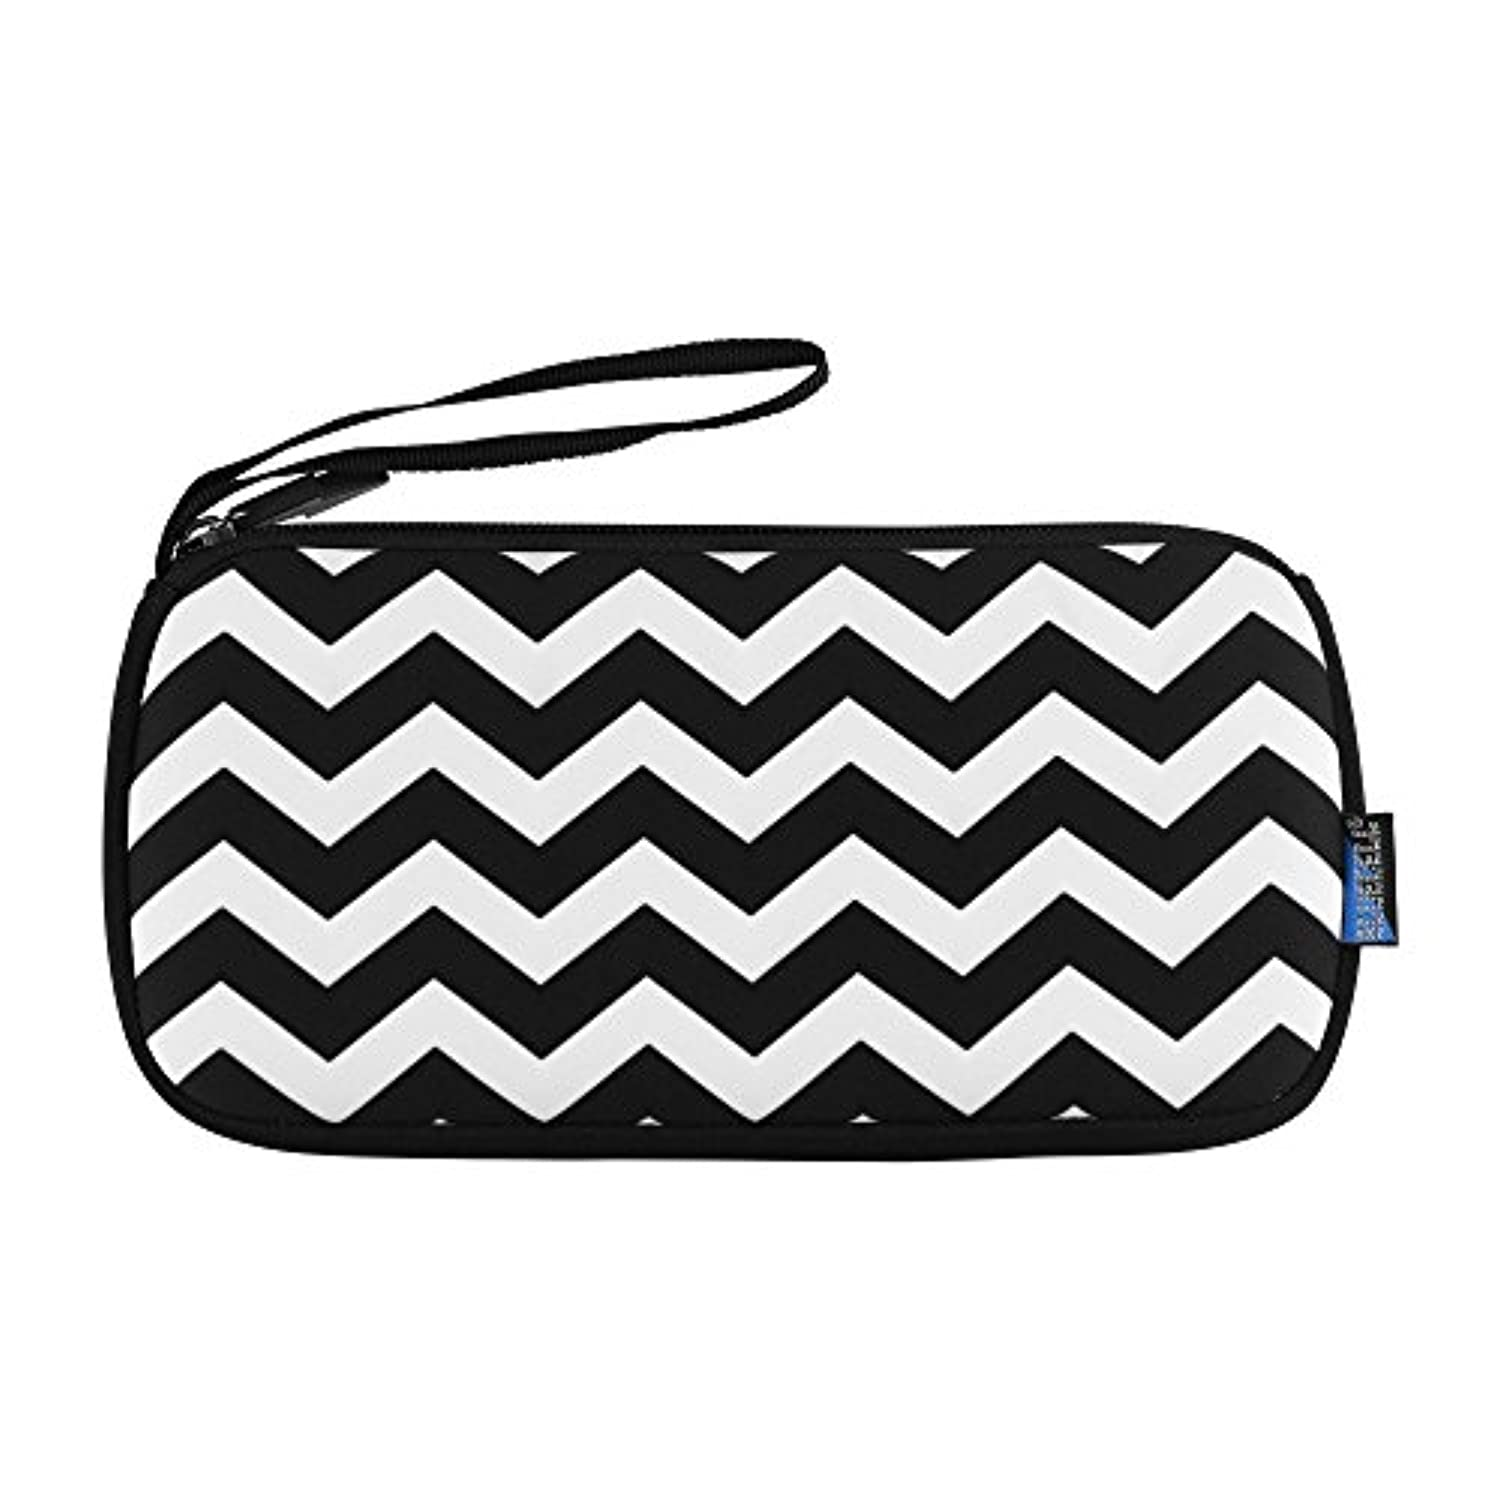 Bluecell 8.6inches Multipurpose Neoprene Pencil Case Pen Pencil Bag Pouch Holder, Makeup Case Cosmetic Bags (Black/White)